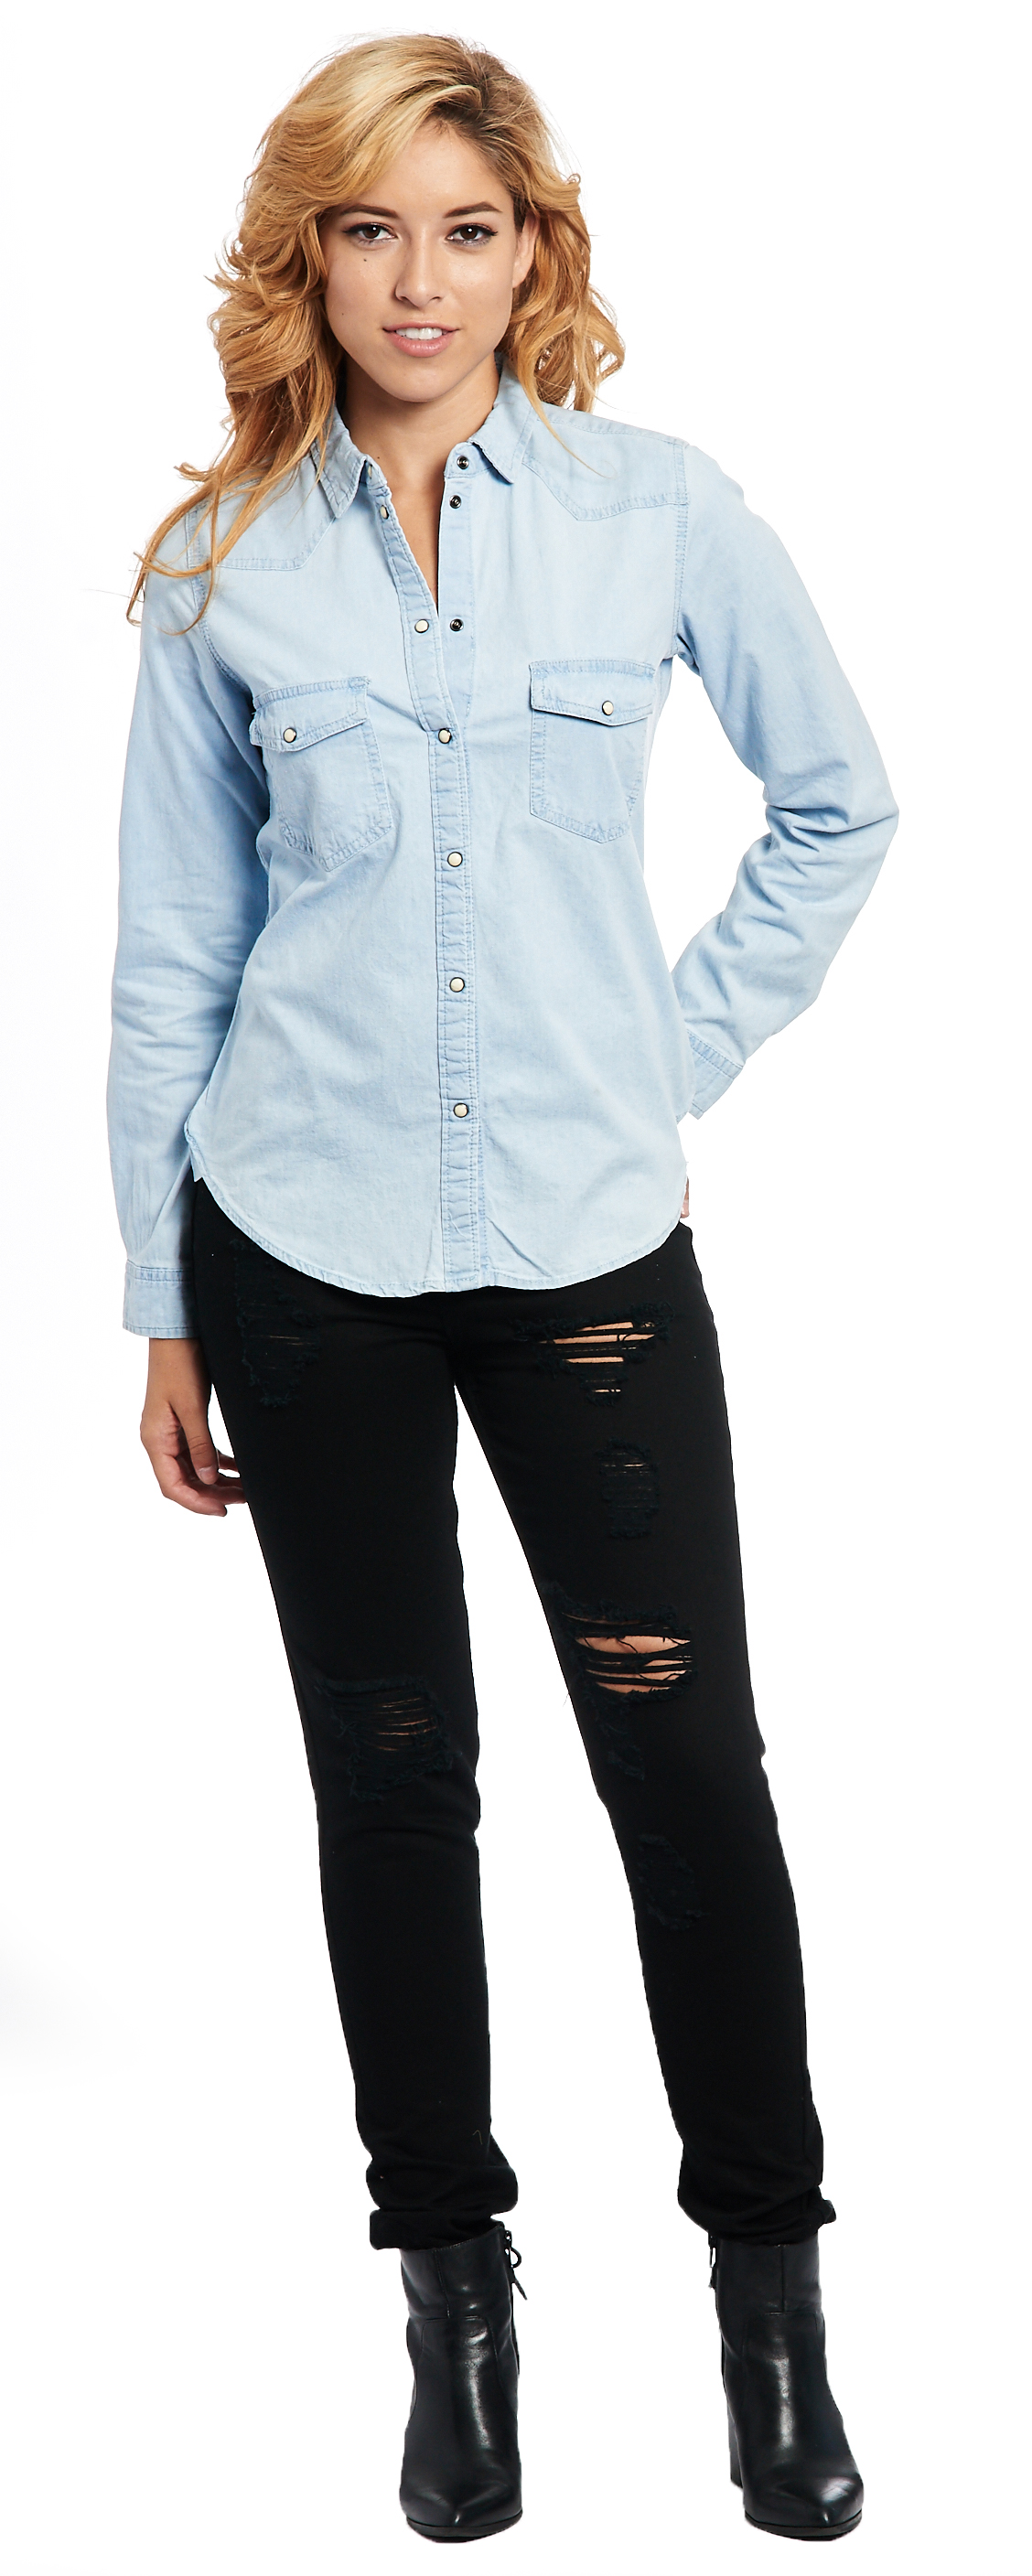 5369253f39169c Glamsia - Women's Light Indigo Long Sleeve Denim Western Style Button Up  Shirt - Walmart.com